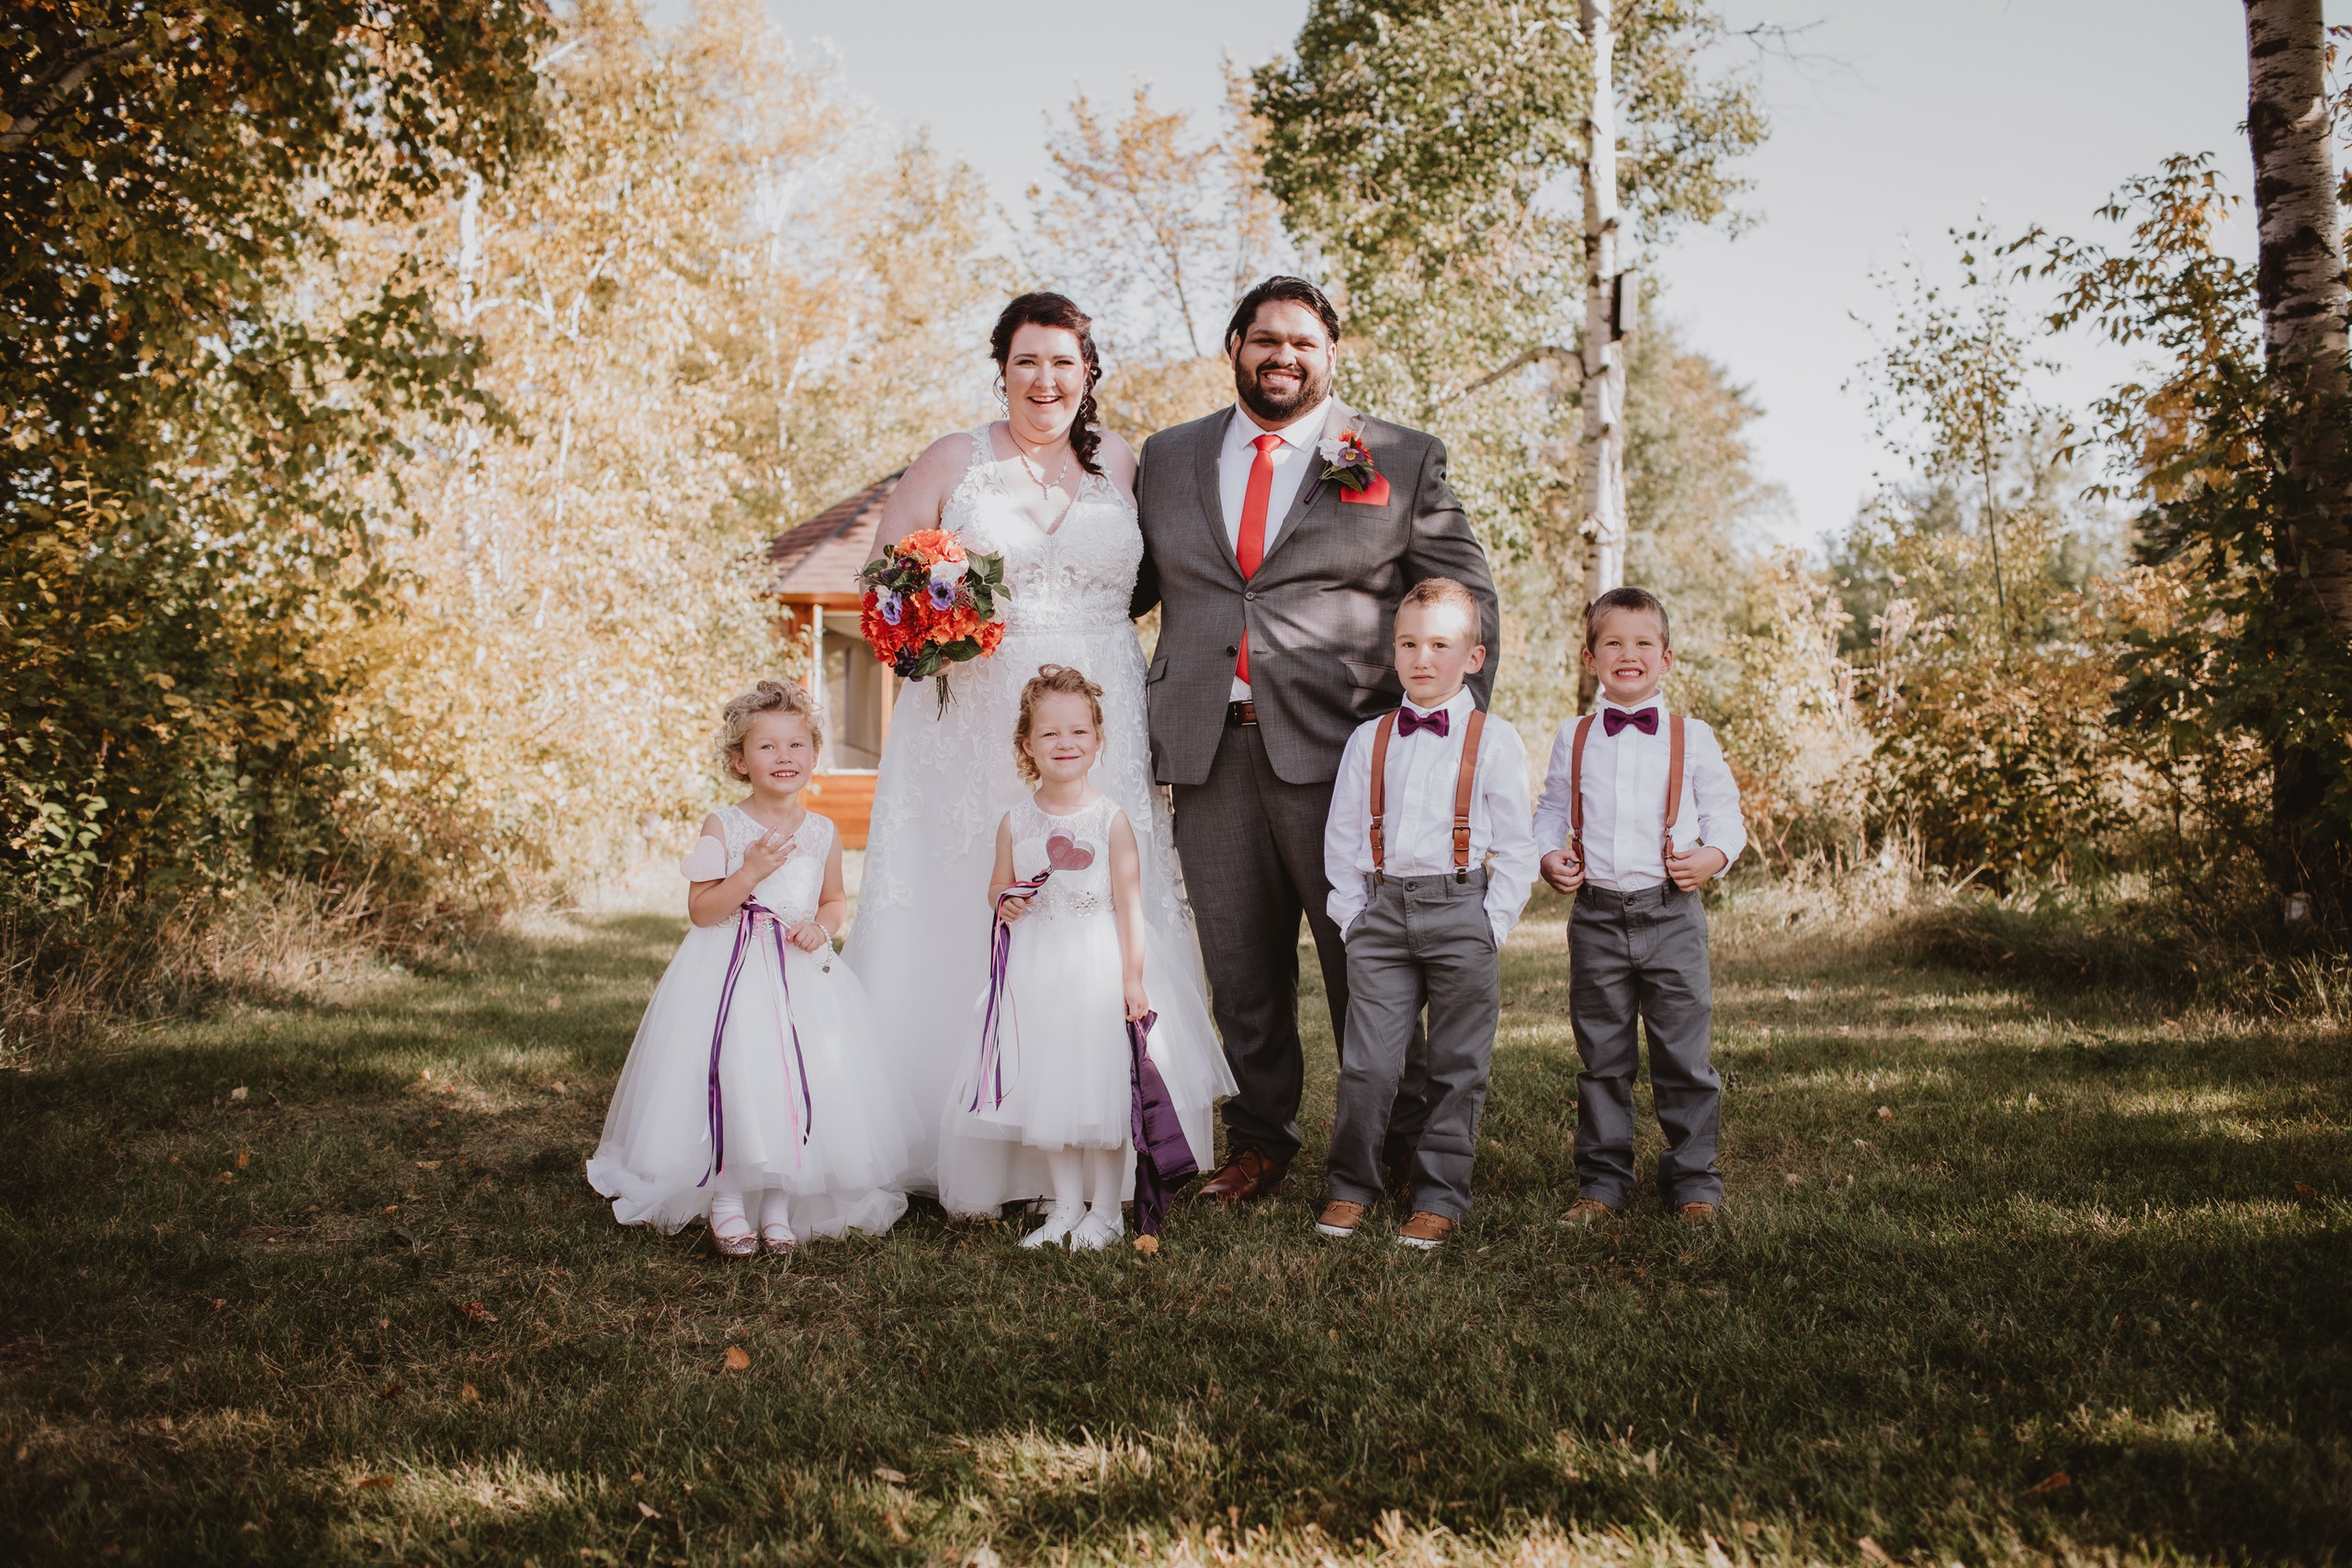 Flower girls and ring bearers pose with wedding couple.